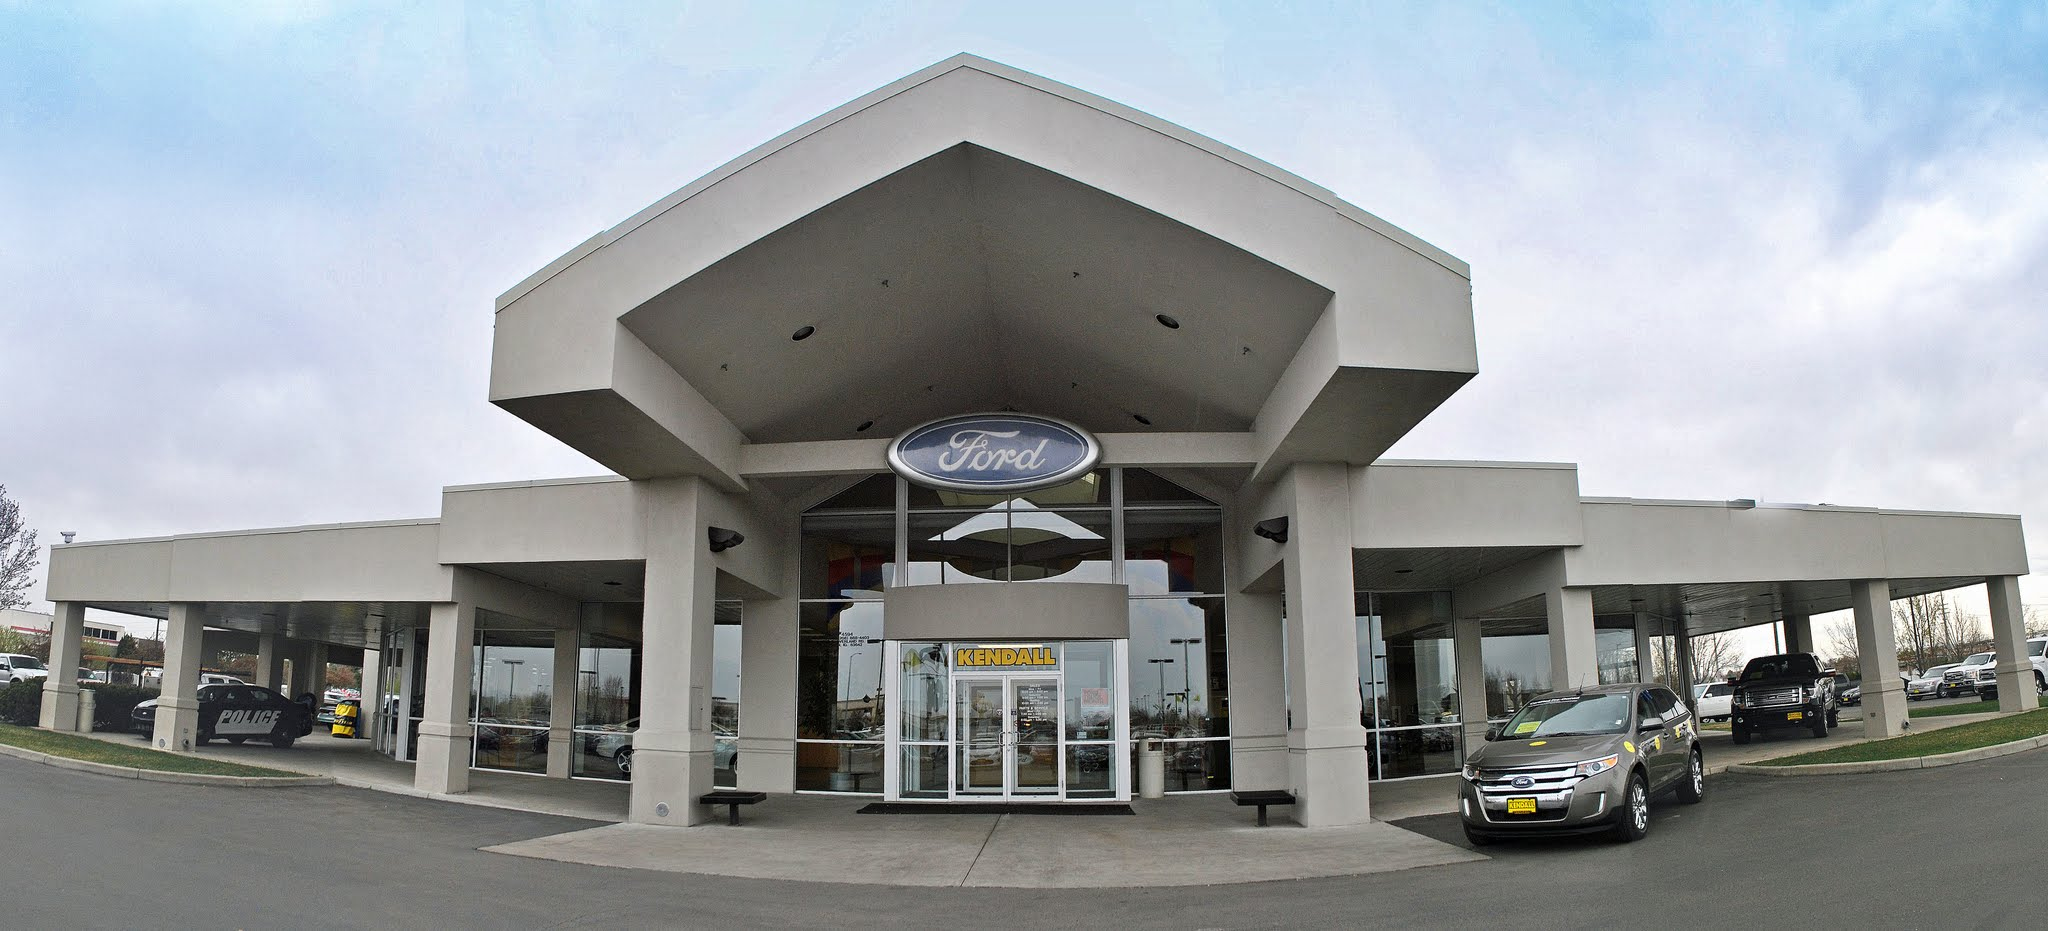 New Certified Ford Dealership Used Cars For Sale Kendall Ford